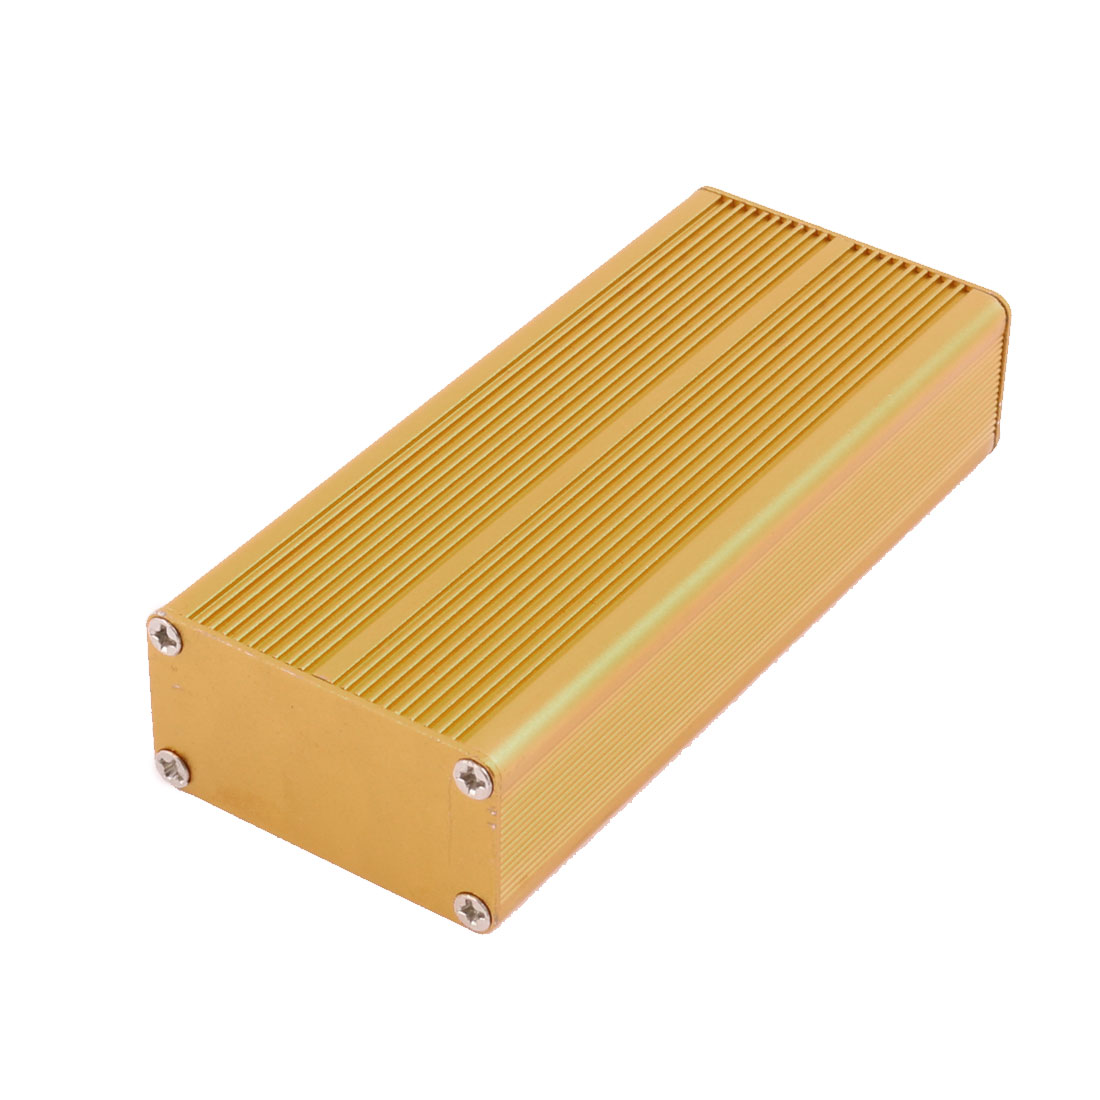 25 x 48 x 110mm Multi-purpose Electronic Extruded Aluminum Enclosure Gold Tone